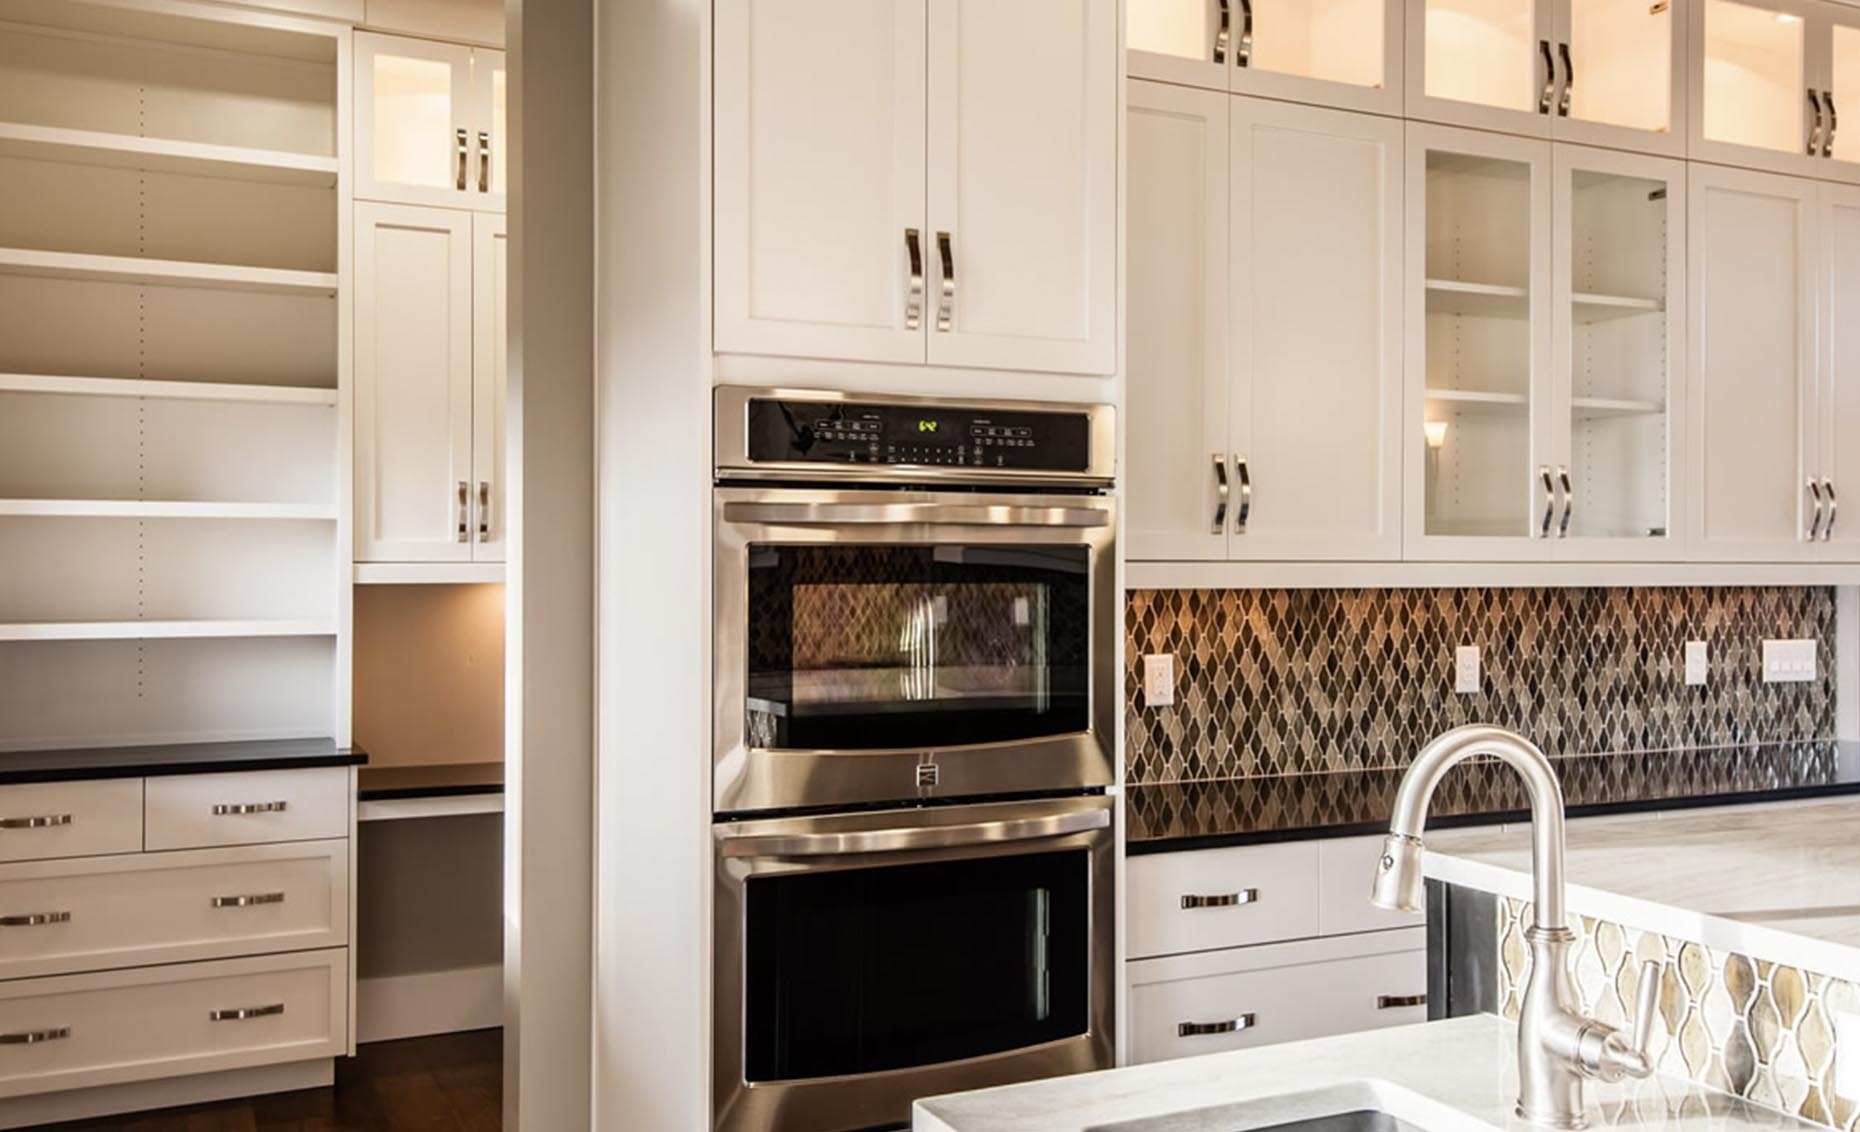 The Heavens Way House Kitchen Appliances and Cabinetry